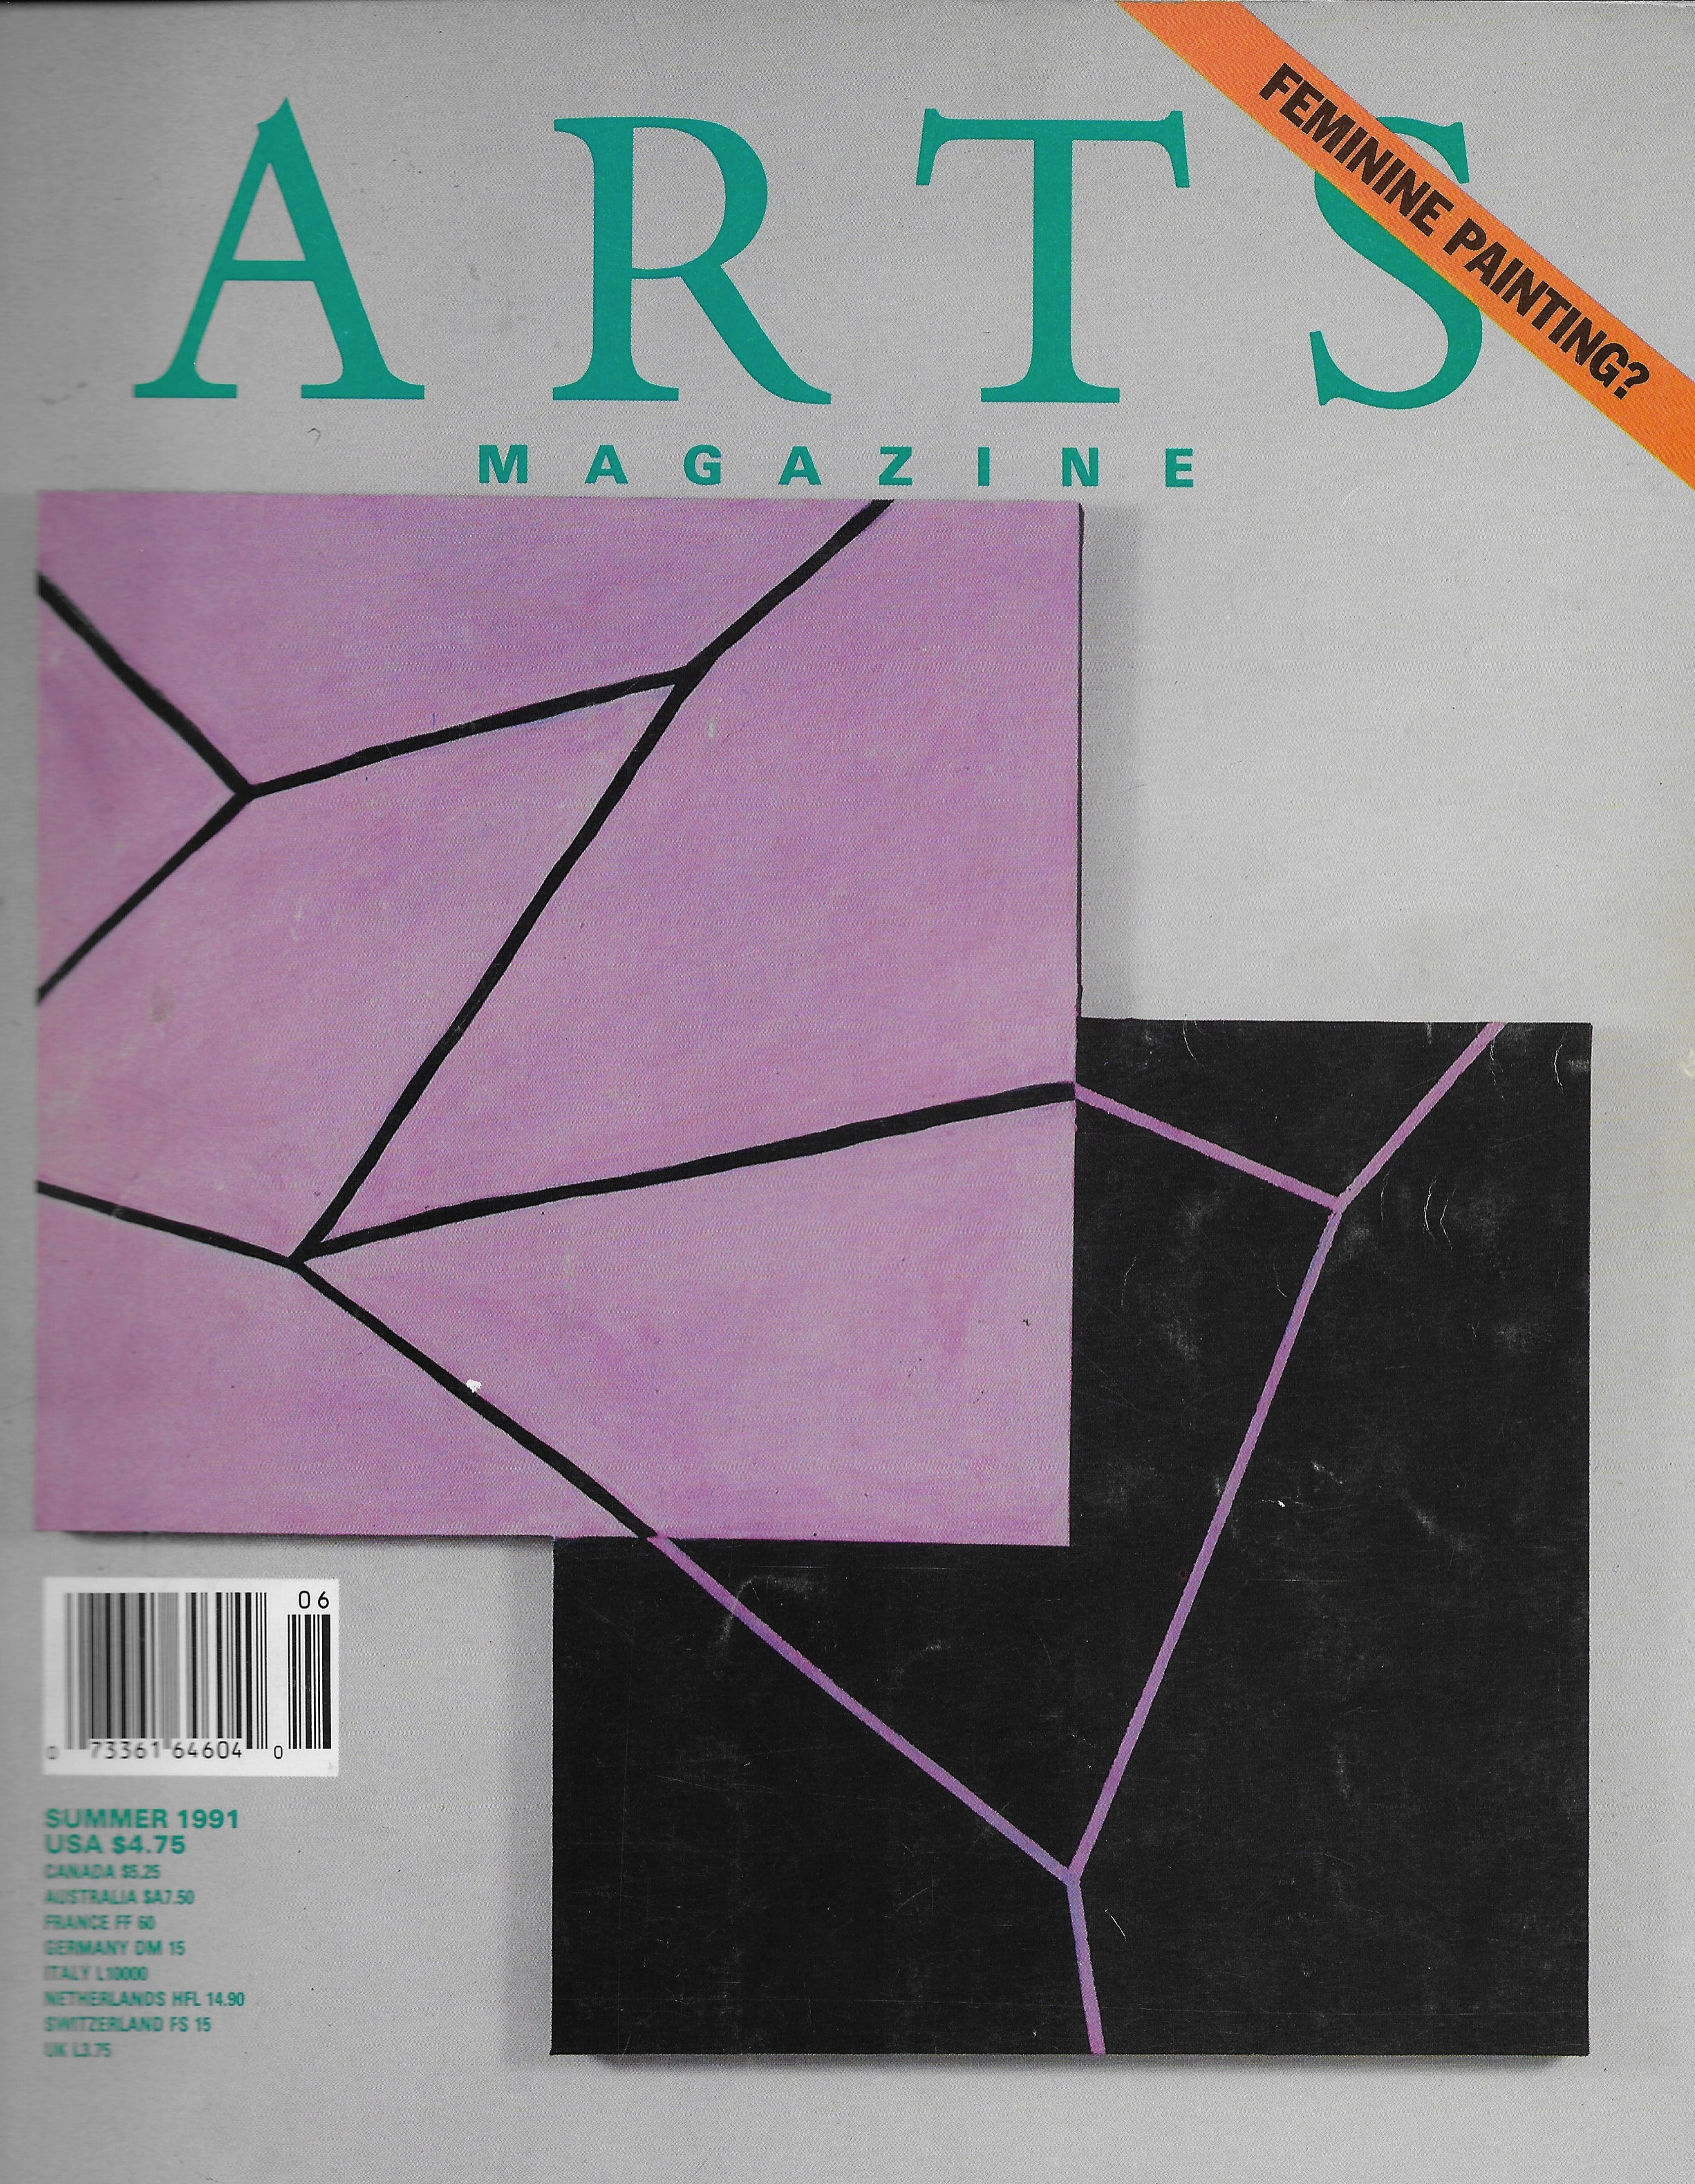 """ Painting and its Others ,"" as published in  Arts Magazine,  Summer 1991. Cover image: Mary Heilmann,  Mode O'Day  (1991). Oil on canvas, 54 x 64 inches."